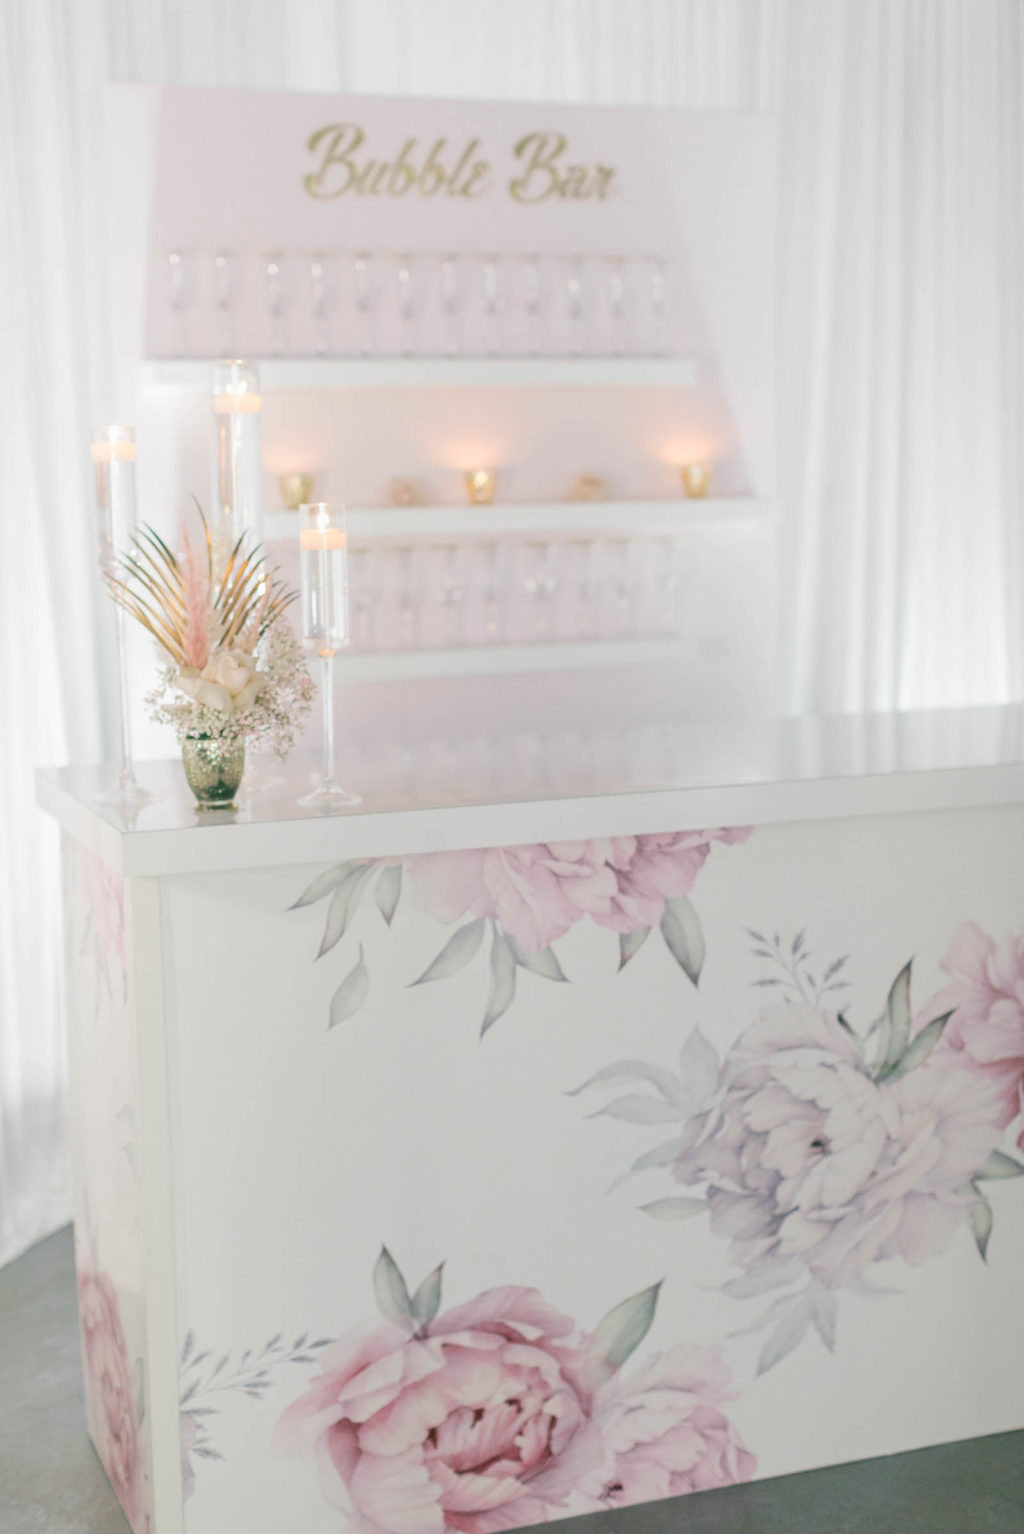 Clearwater Beach Wedding Venue Bellwether Beach Resort Styled With Love Something Bleu by McKenna Bleu | Instagram Wedding Designer Inspiration | Floral Wrapped Custom Bar with Bubble Bar Champagne Wall Shelf Display